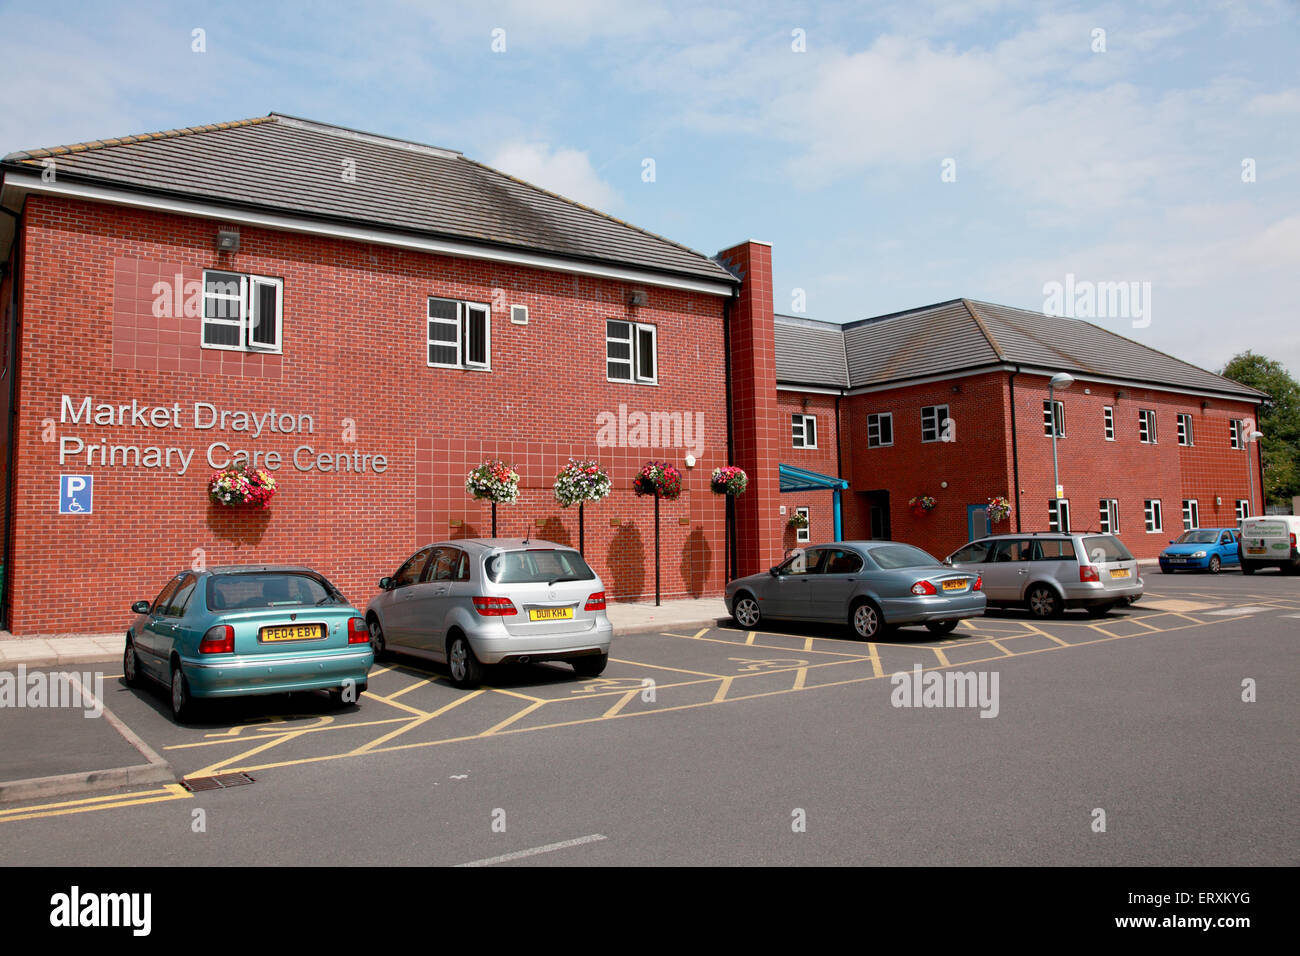 Market Drayton Primary Care Centre which contains a GP practice, a pharmacy, and physiotherapy and dental departments - Stock Image